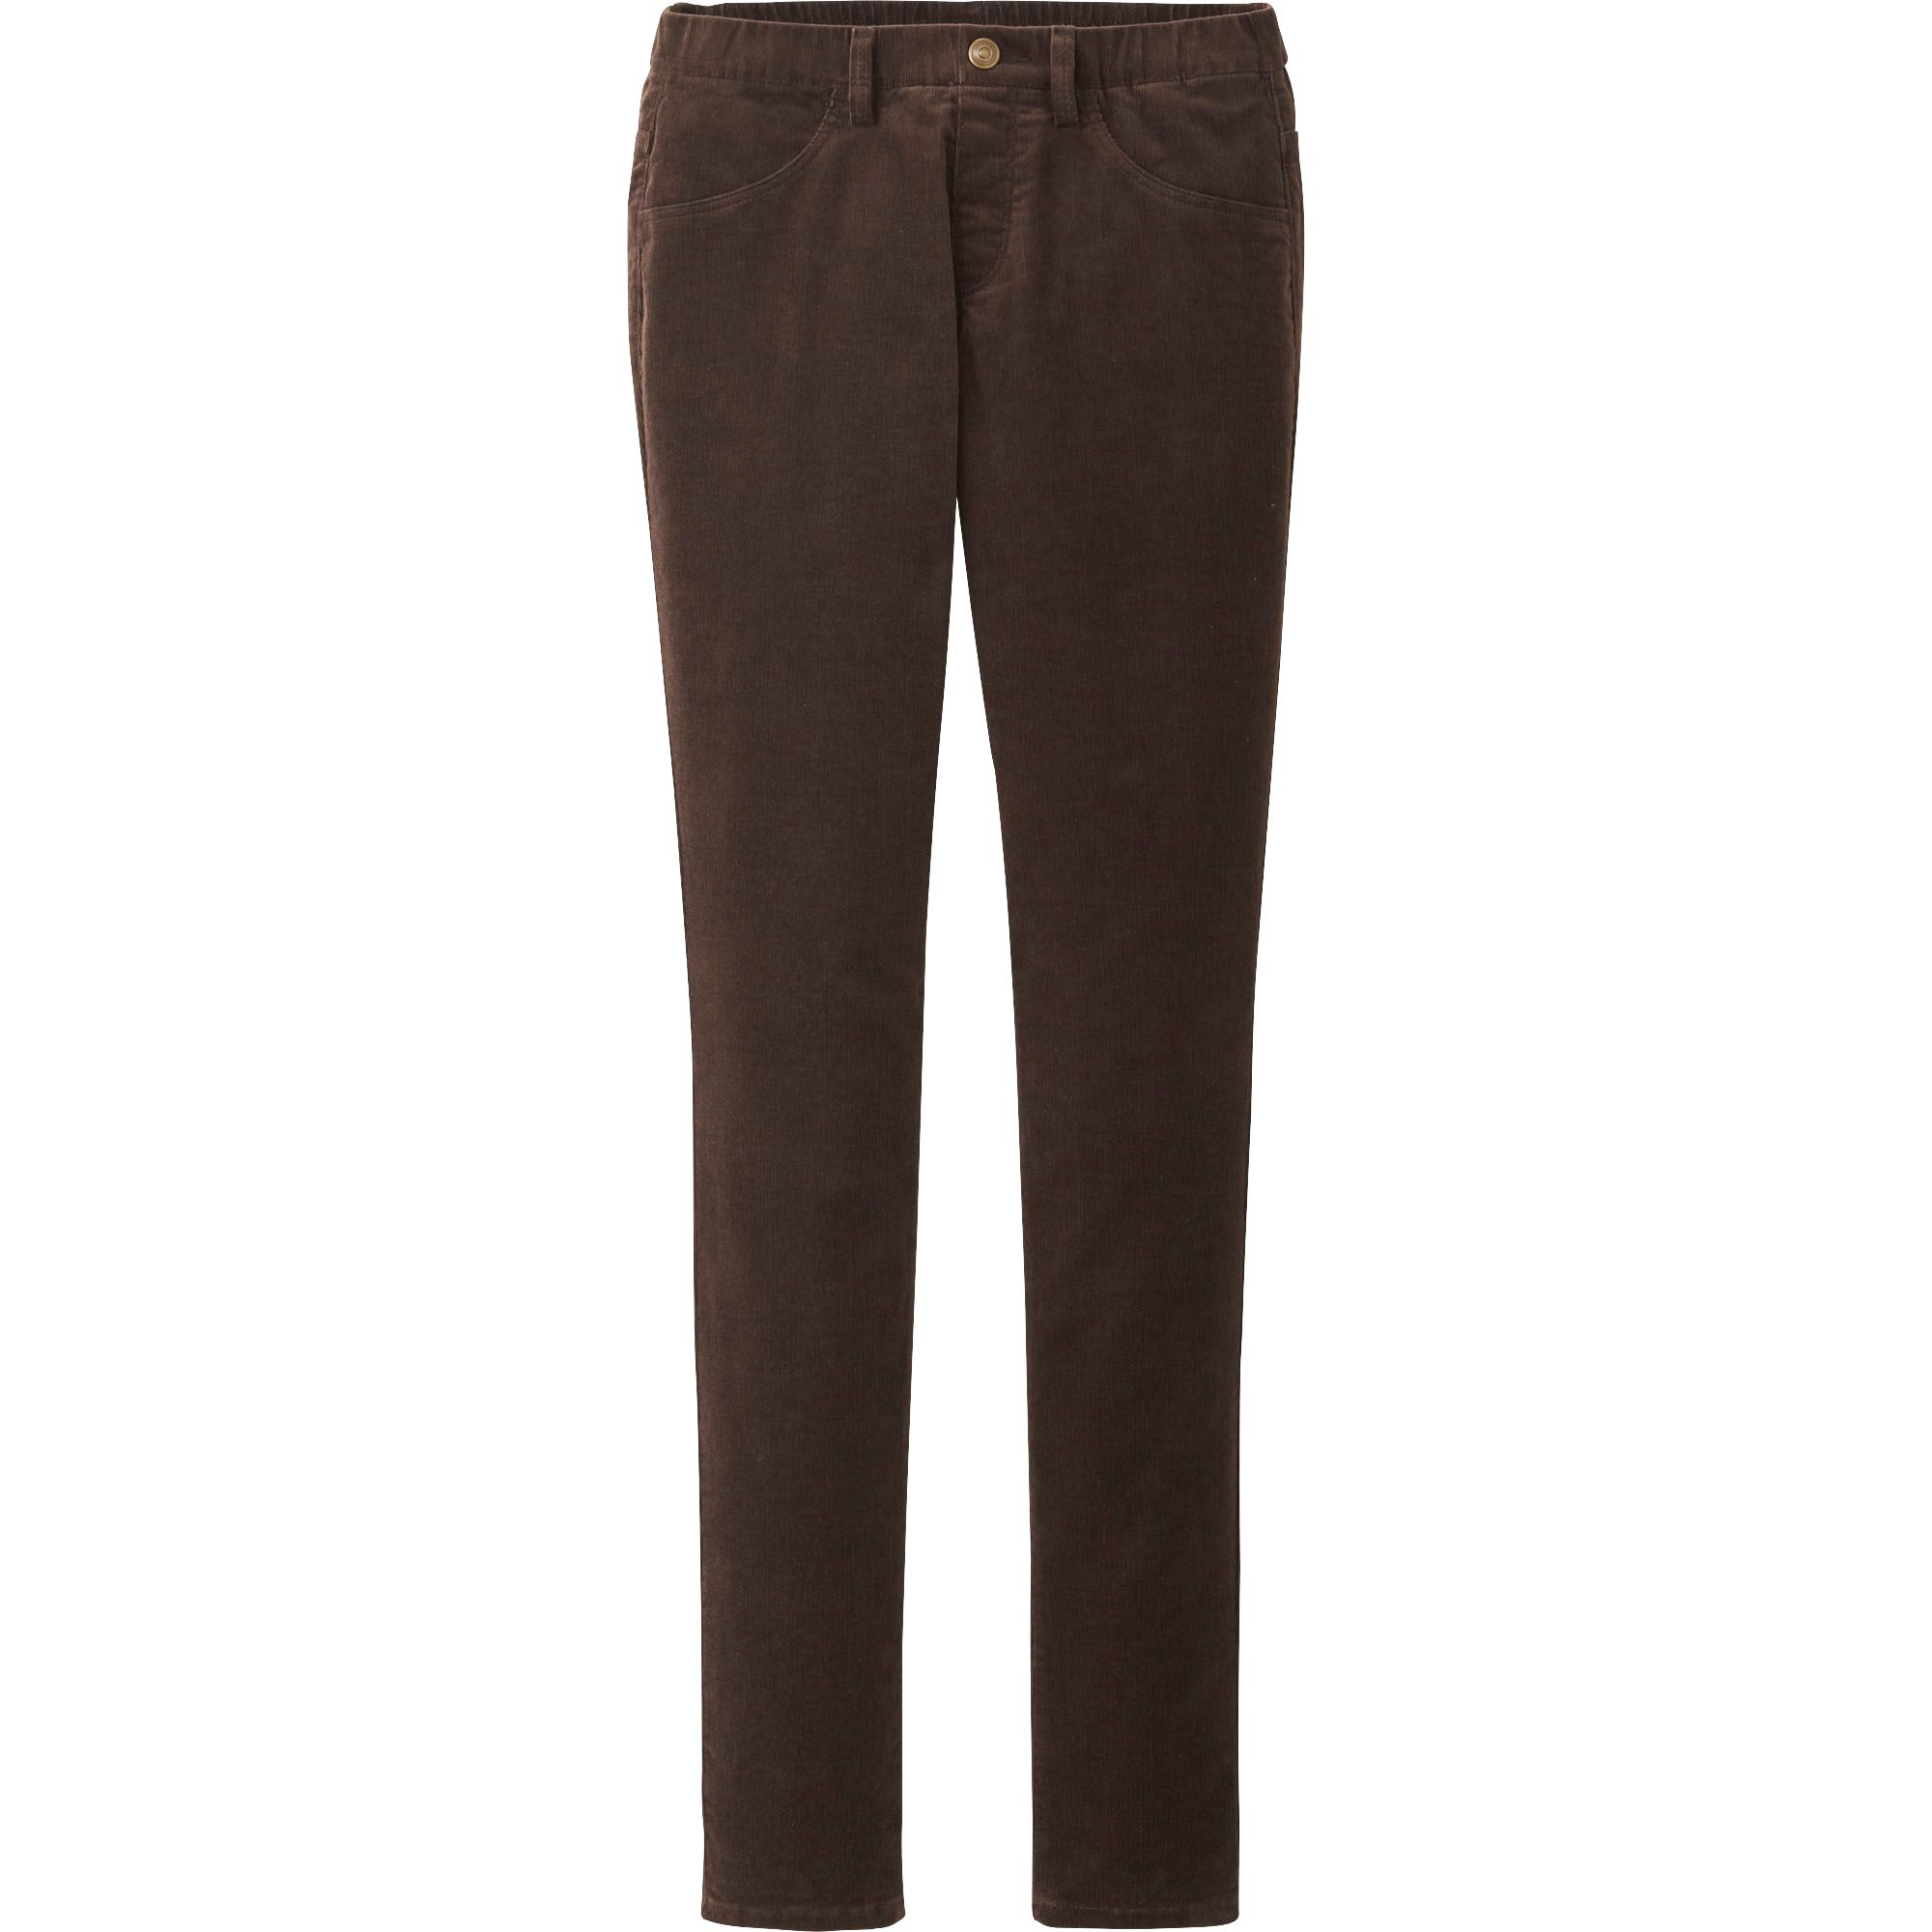 Model  Have In My Closet  Pinterest  Tan Pants Forever21 And Pants